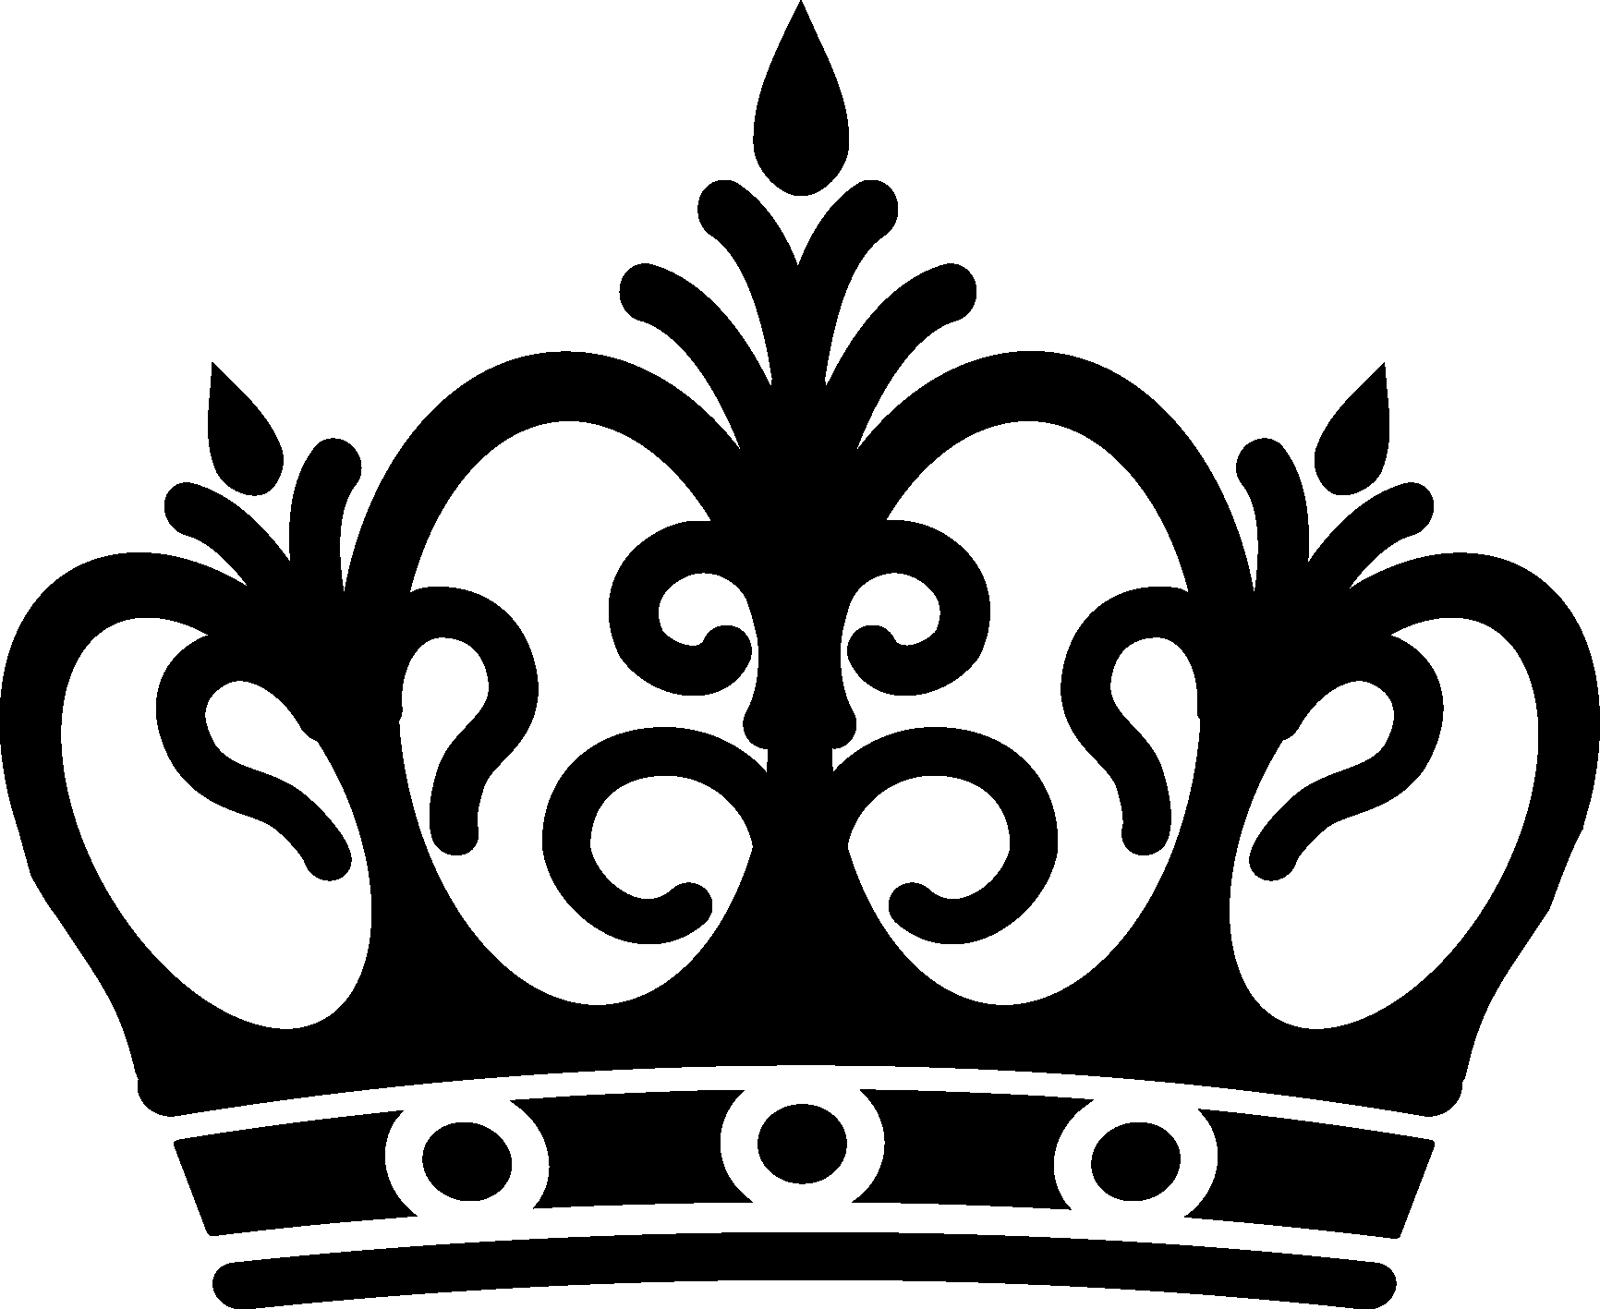 Crown clipart png graphic Queen Crown Clipart & Queen Crown Clip Art Images - ClipartALL.com graphic